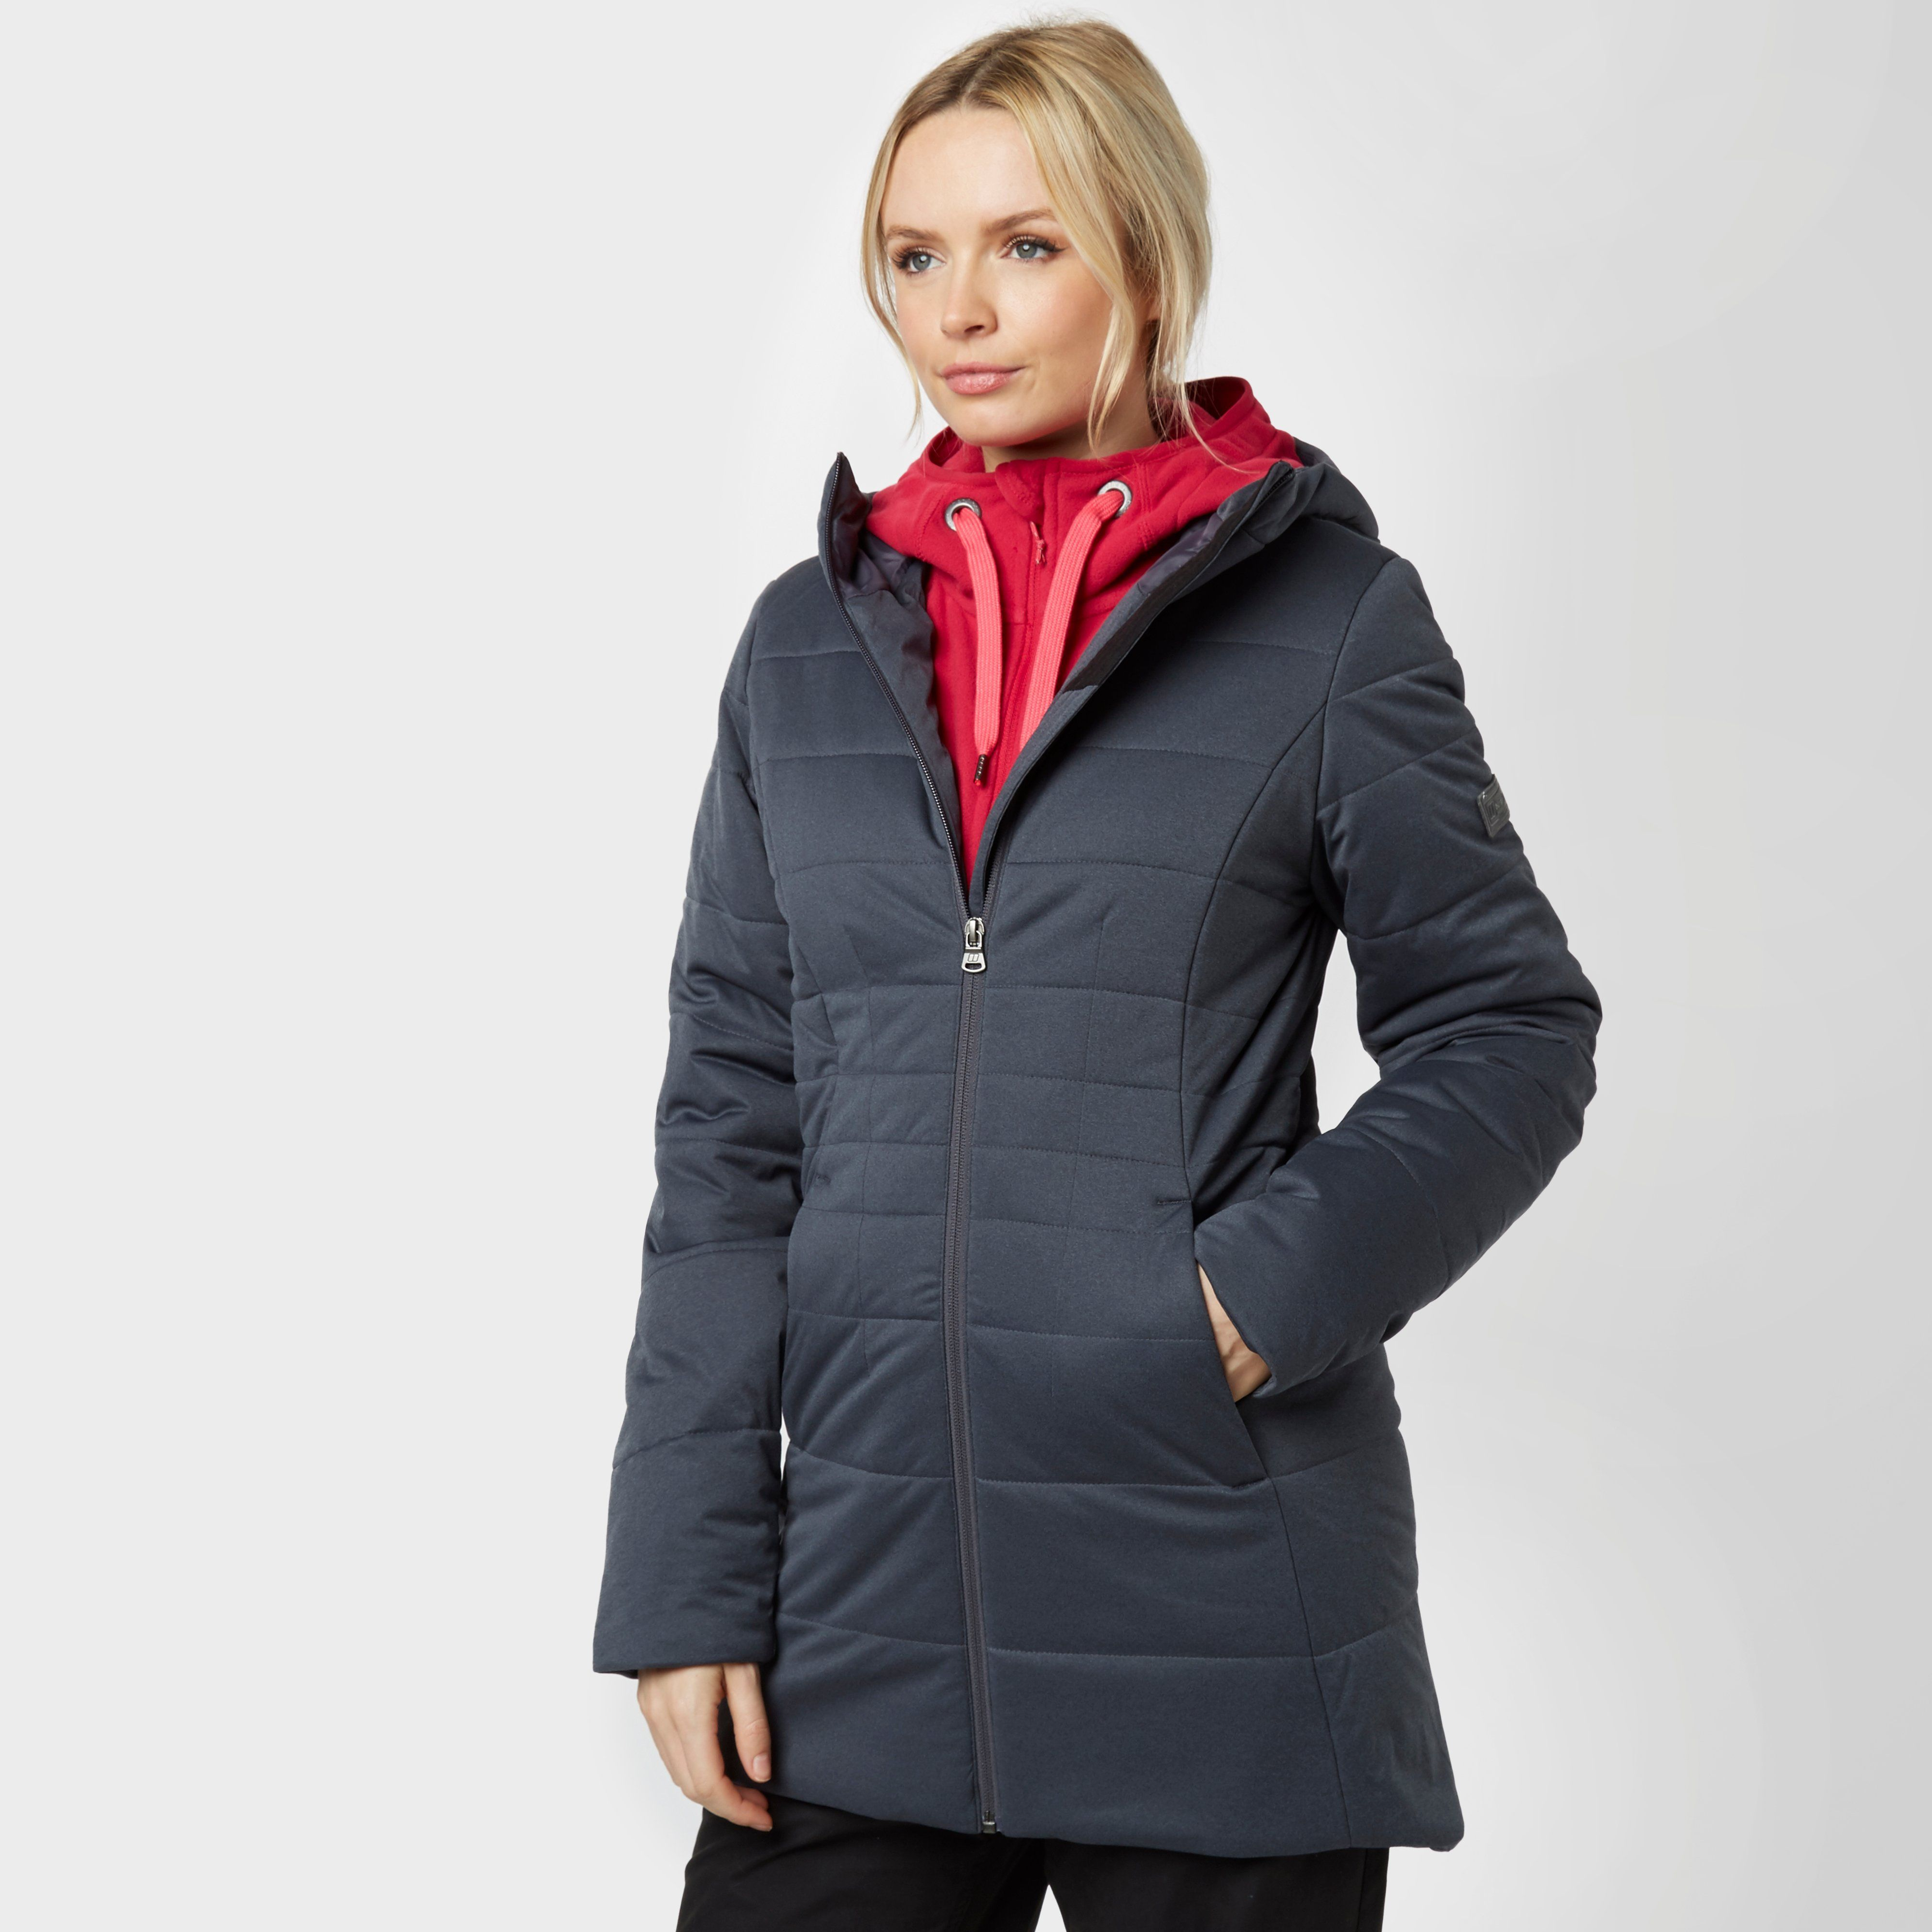 BERGHAUS Women's Hatfield Insulated Jacket